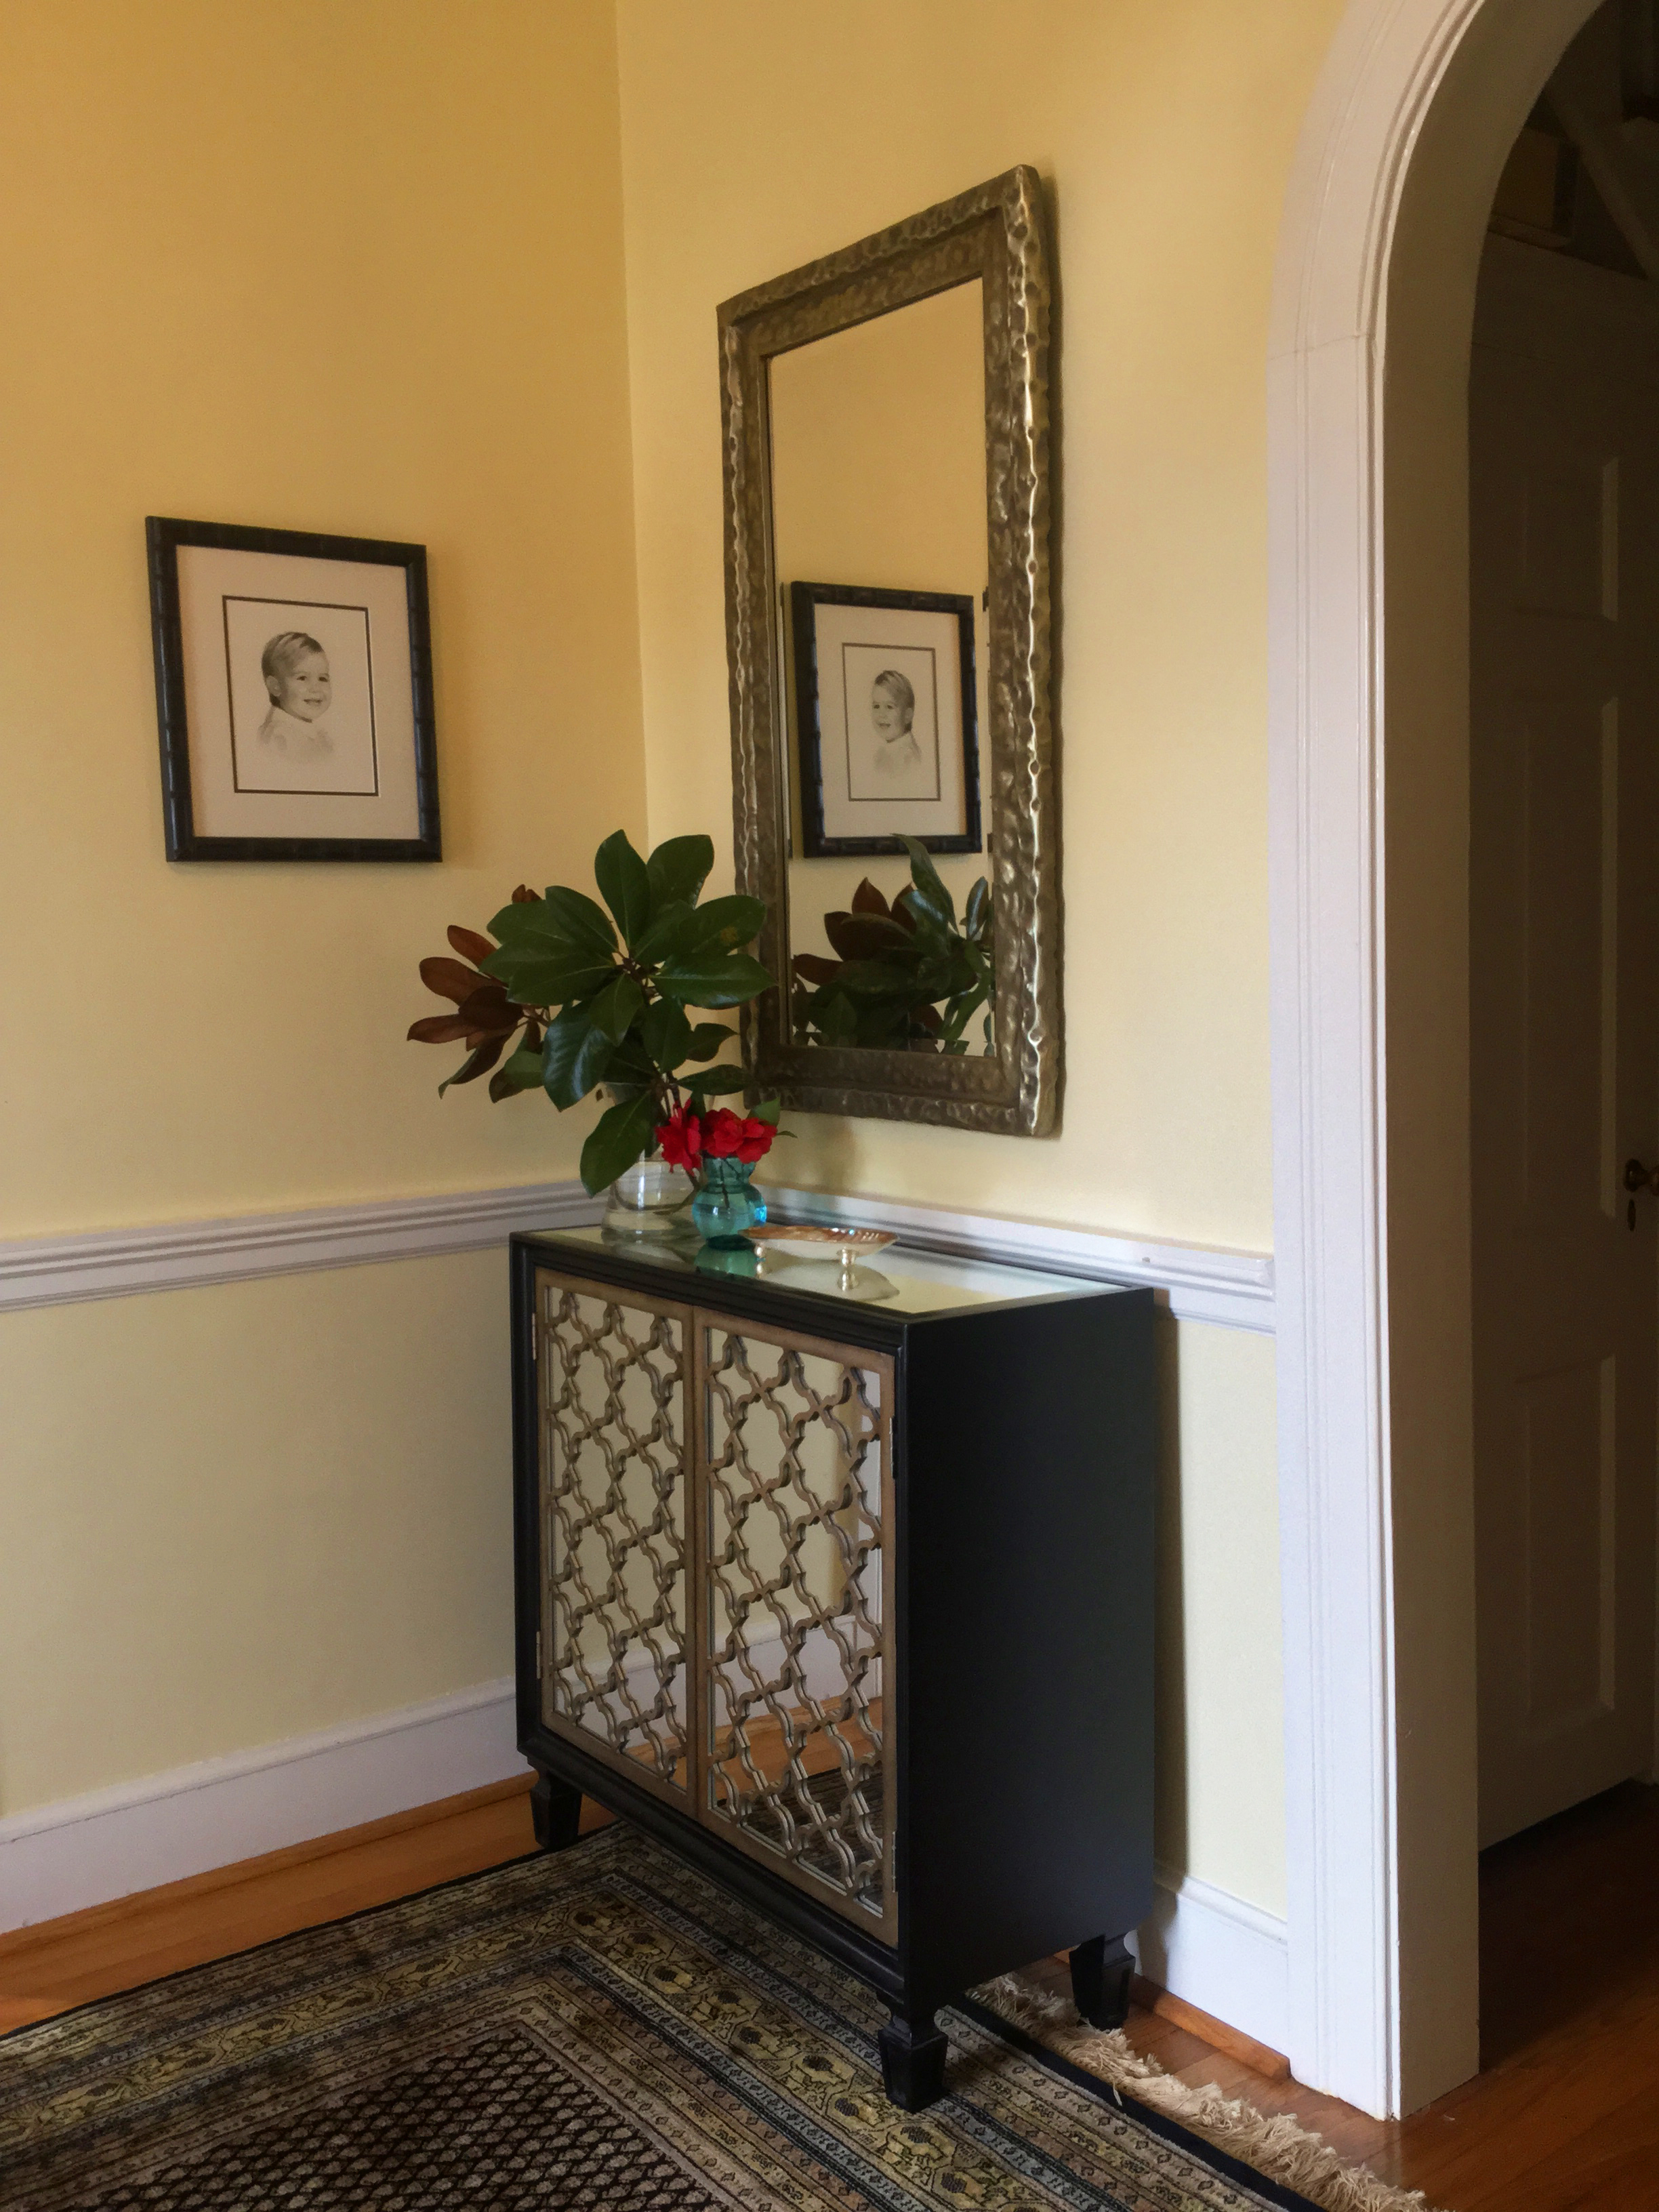 Foyer design and furnishings install